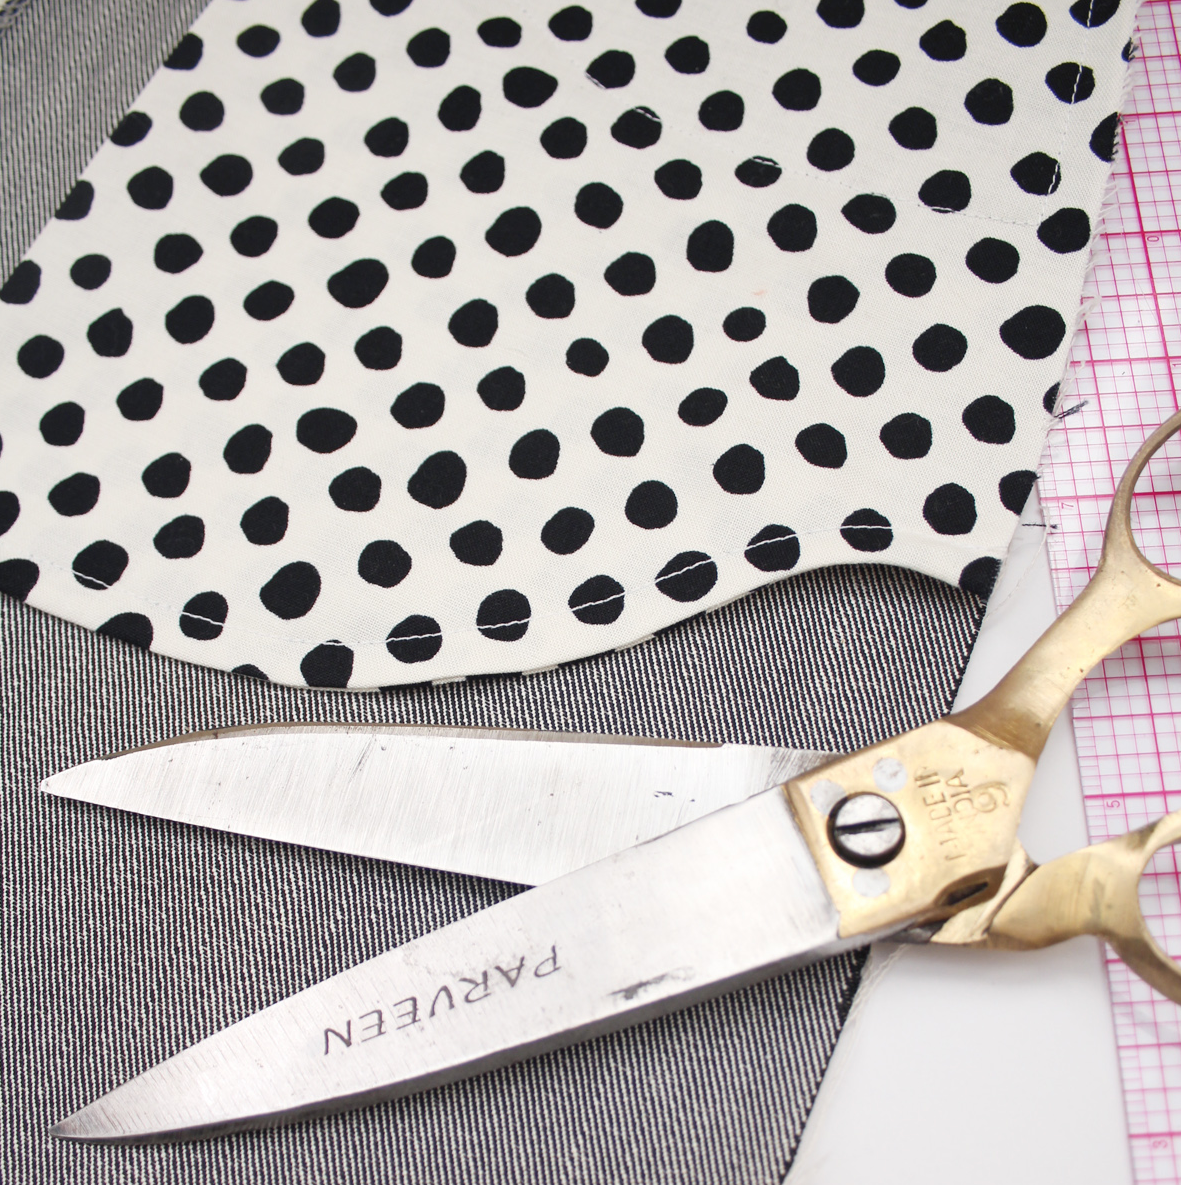 How to Finish Pocket Bags With French Seams